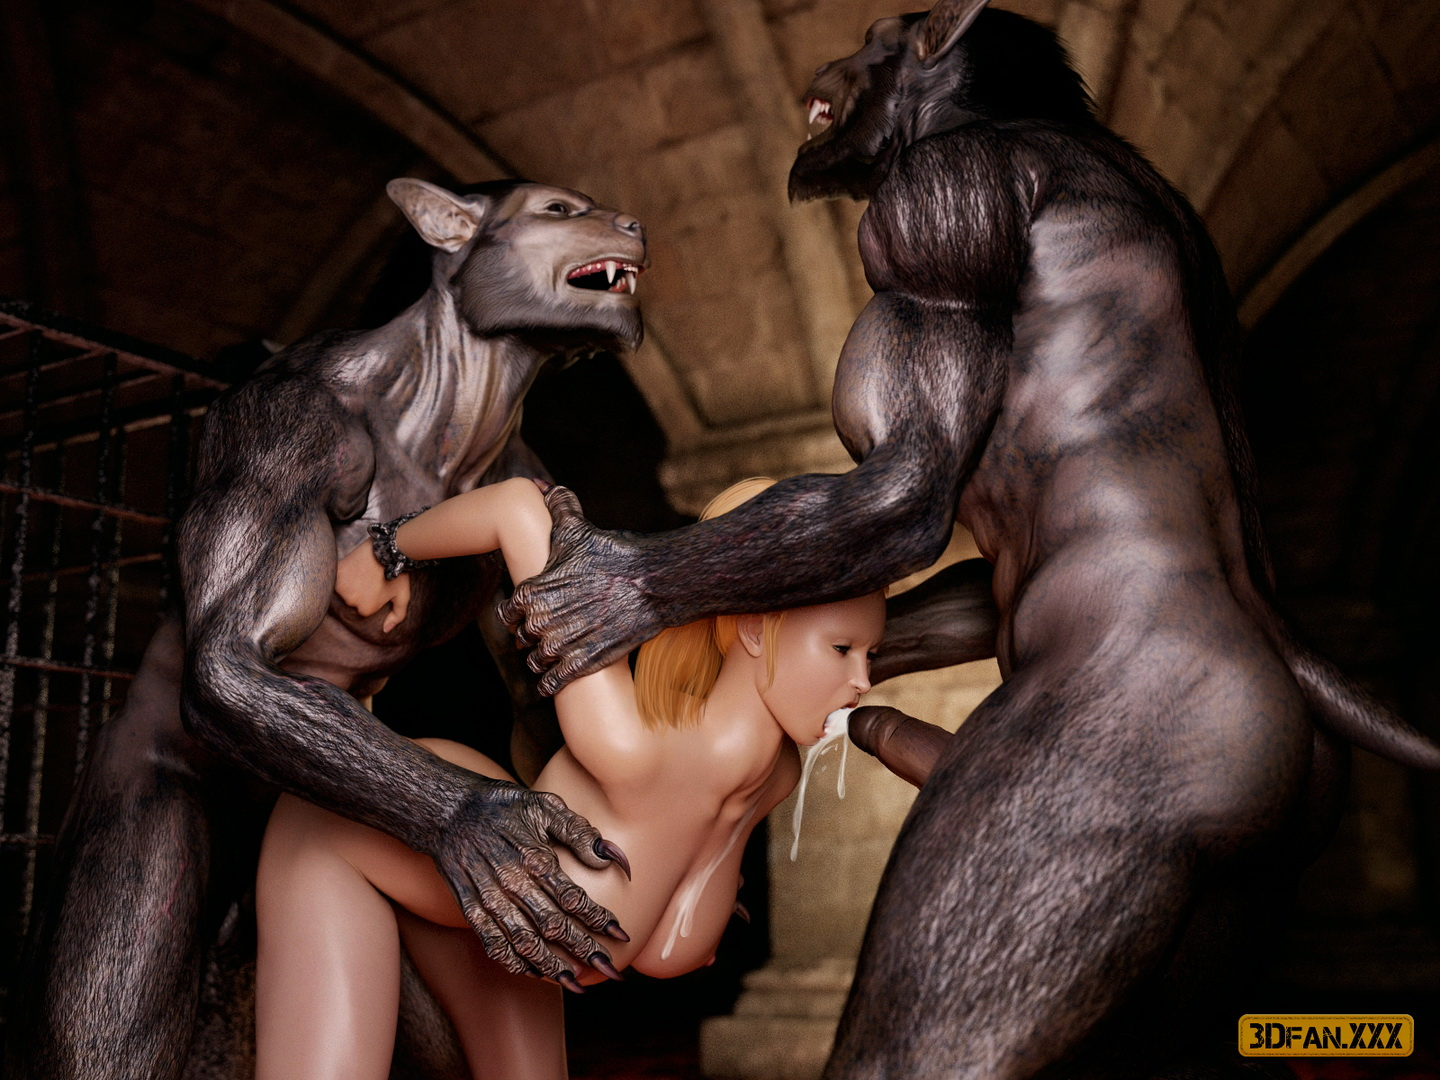 Free 3d monsterporn download porn streaming